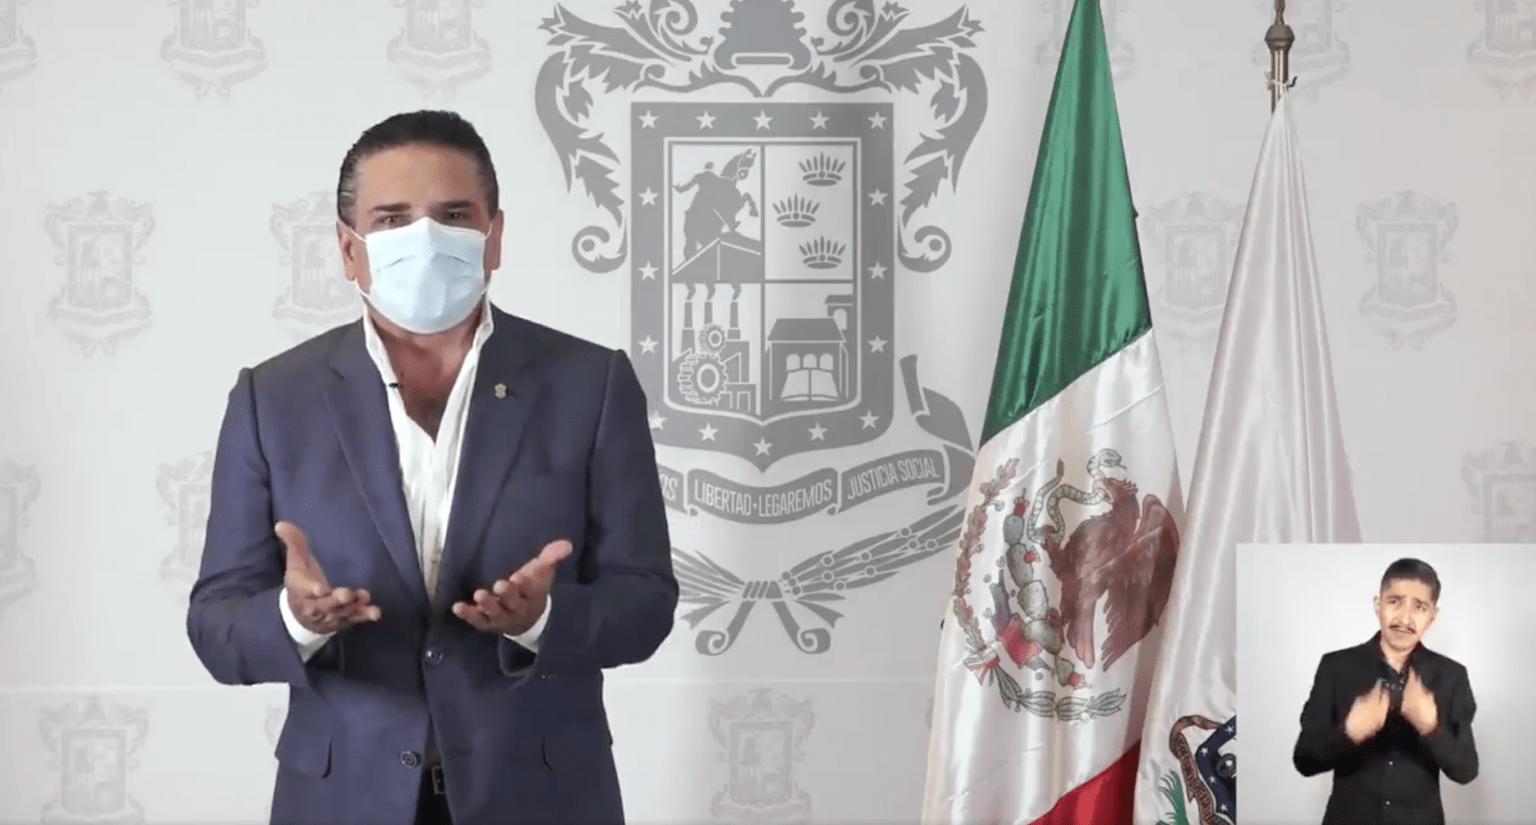 Mexican governor with cartel ties endorses Biden, then gets called out by Mexicans online